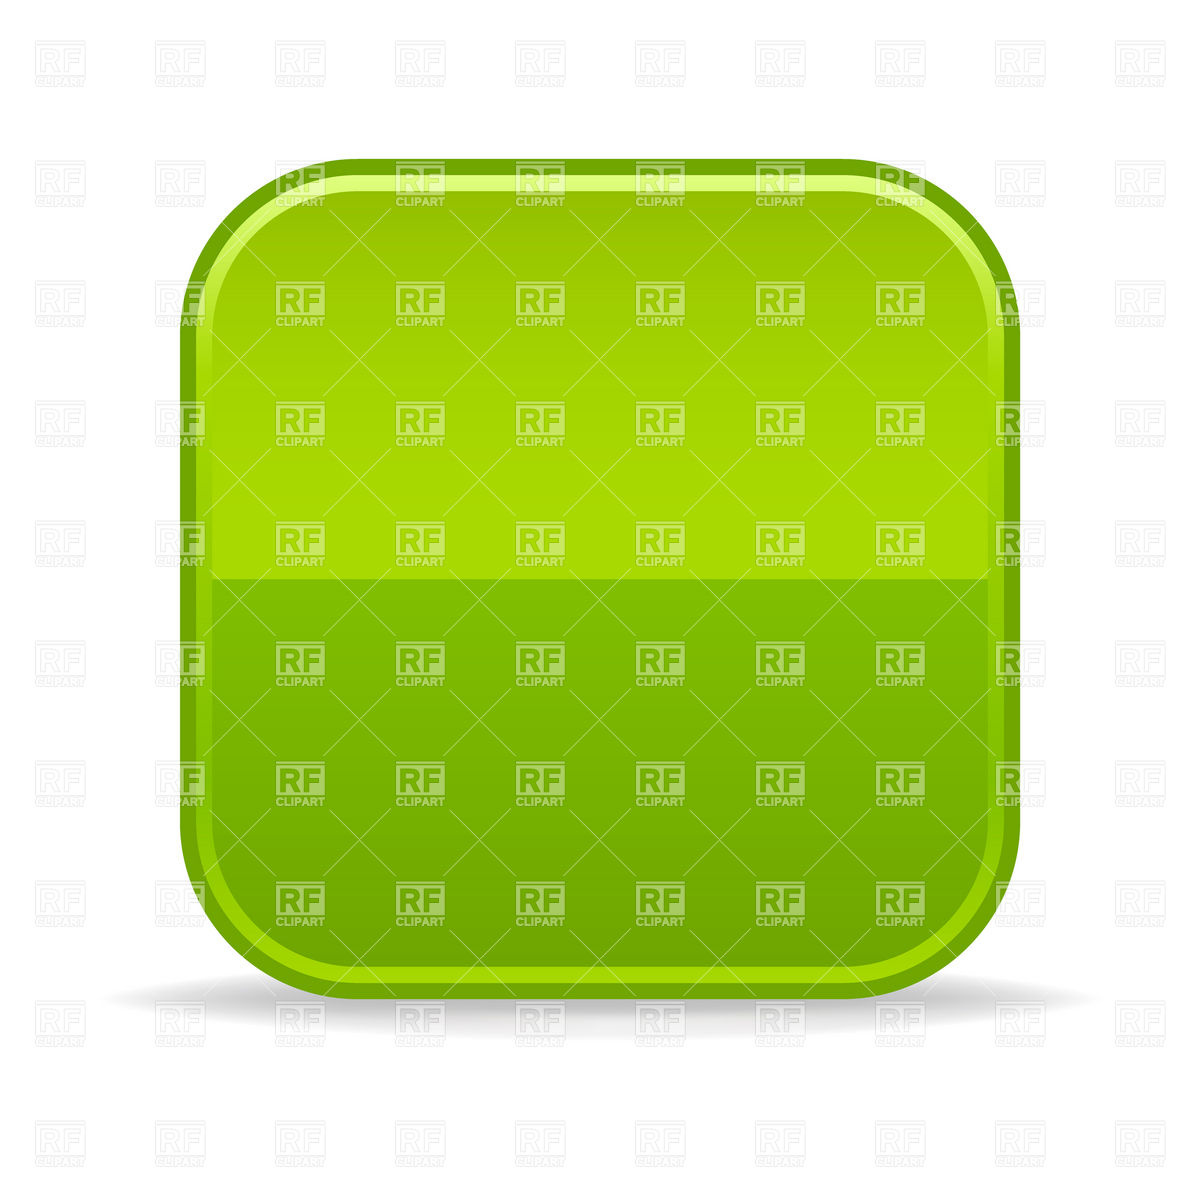 Green Square Button Blank Template With Rounded Corners 14098 Design